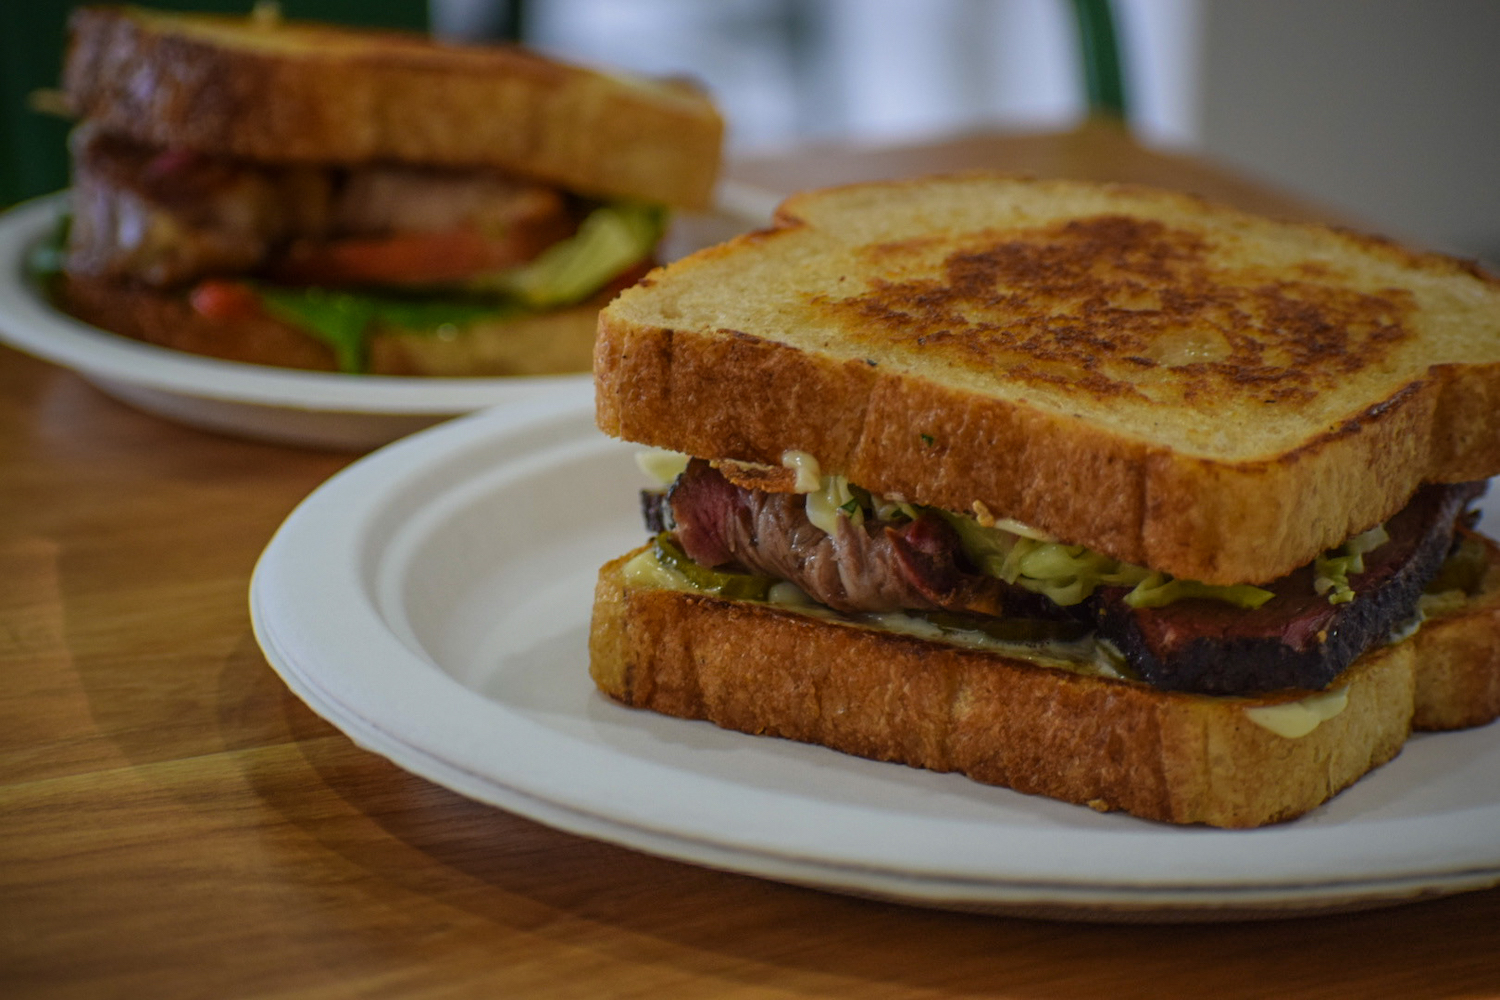 With Heritage, Chef Philip Pretty takes sandwich game to new heights • the Hi-lo